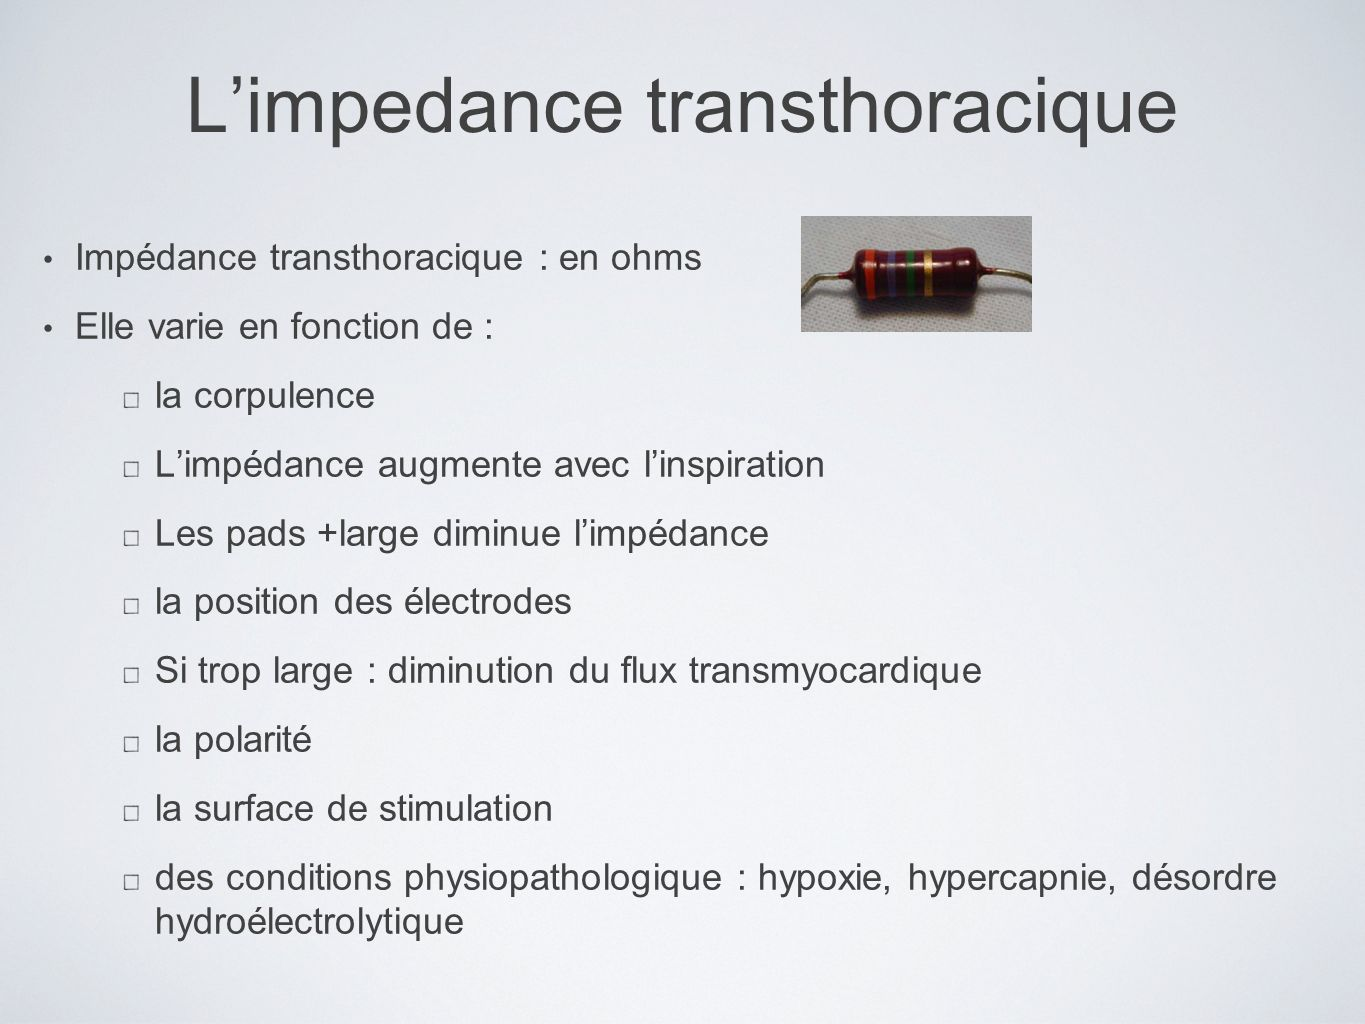 L'impedance transthoracique